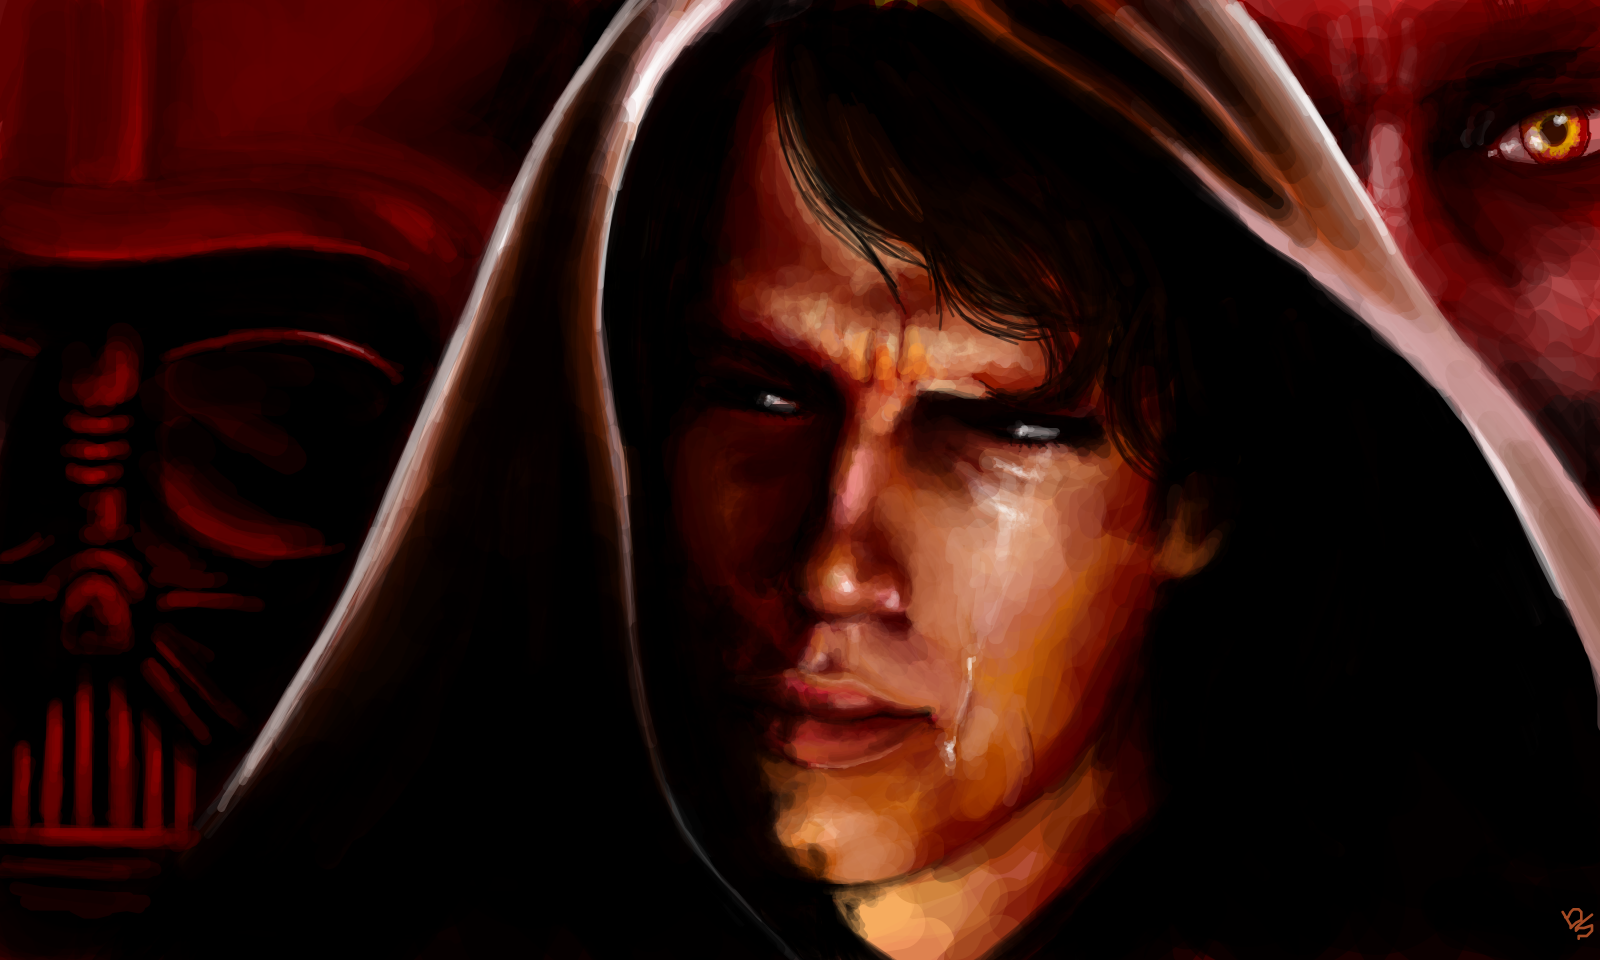 The Chosen One - Anakin Skywalker